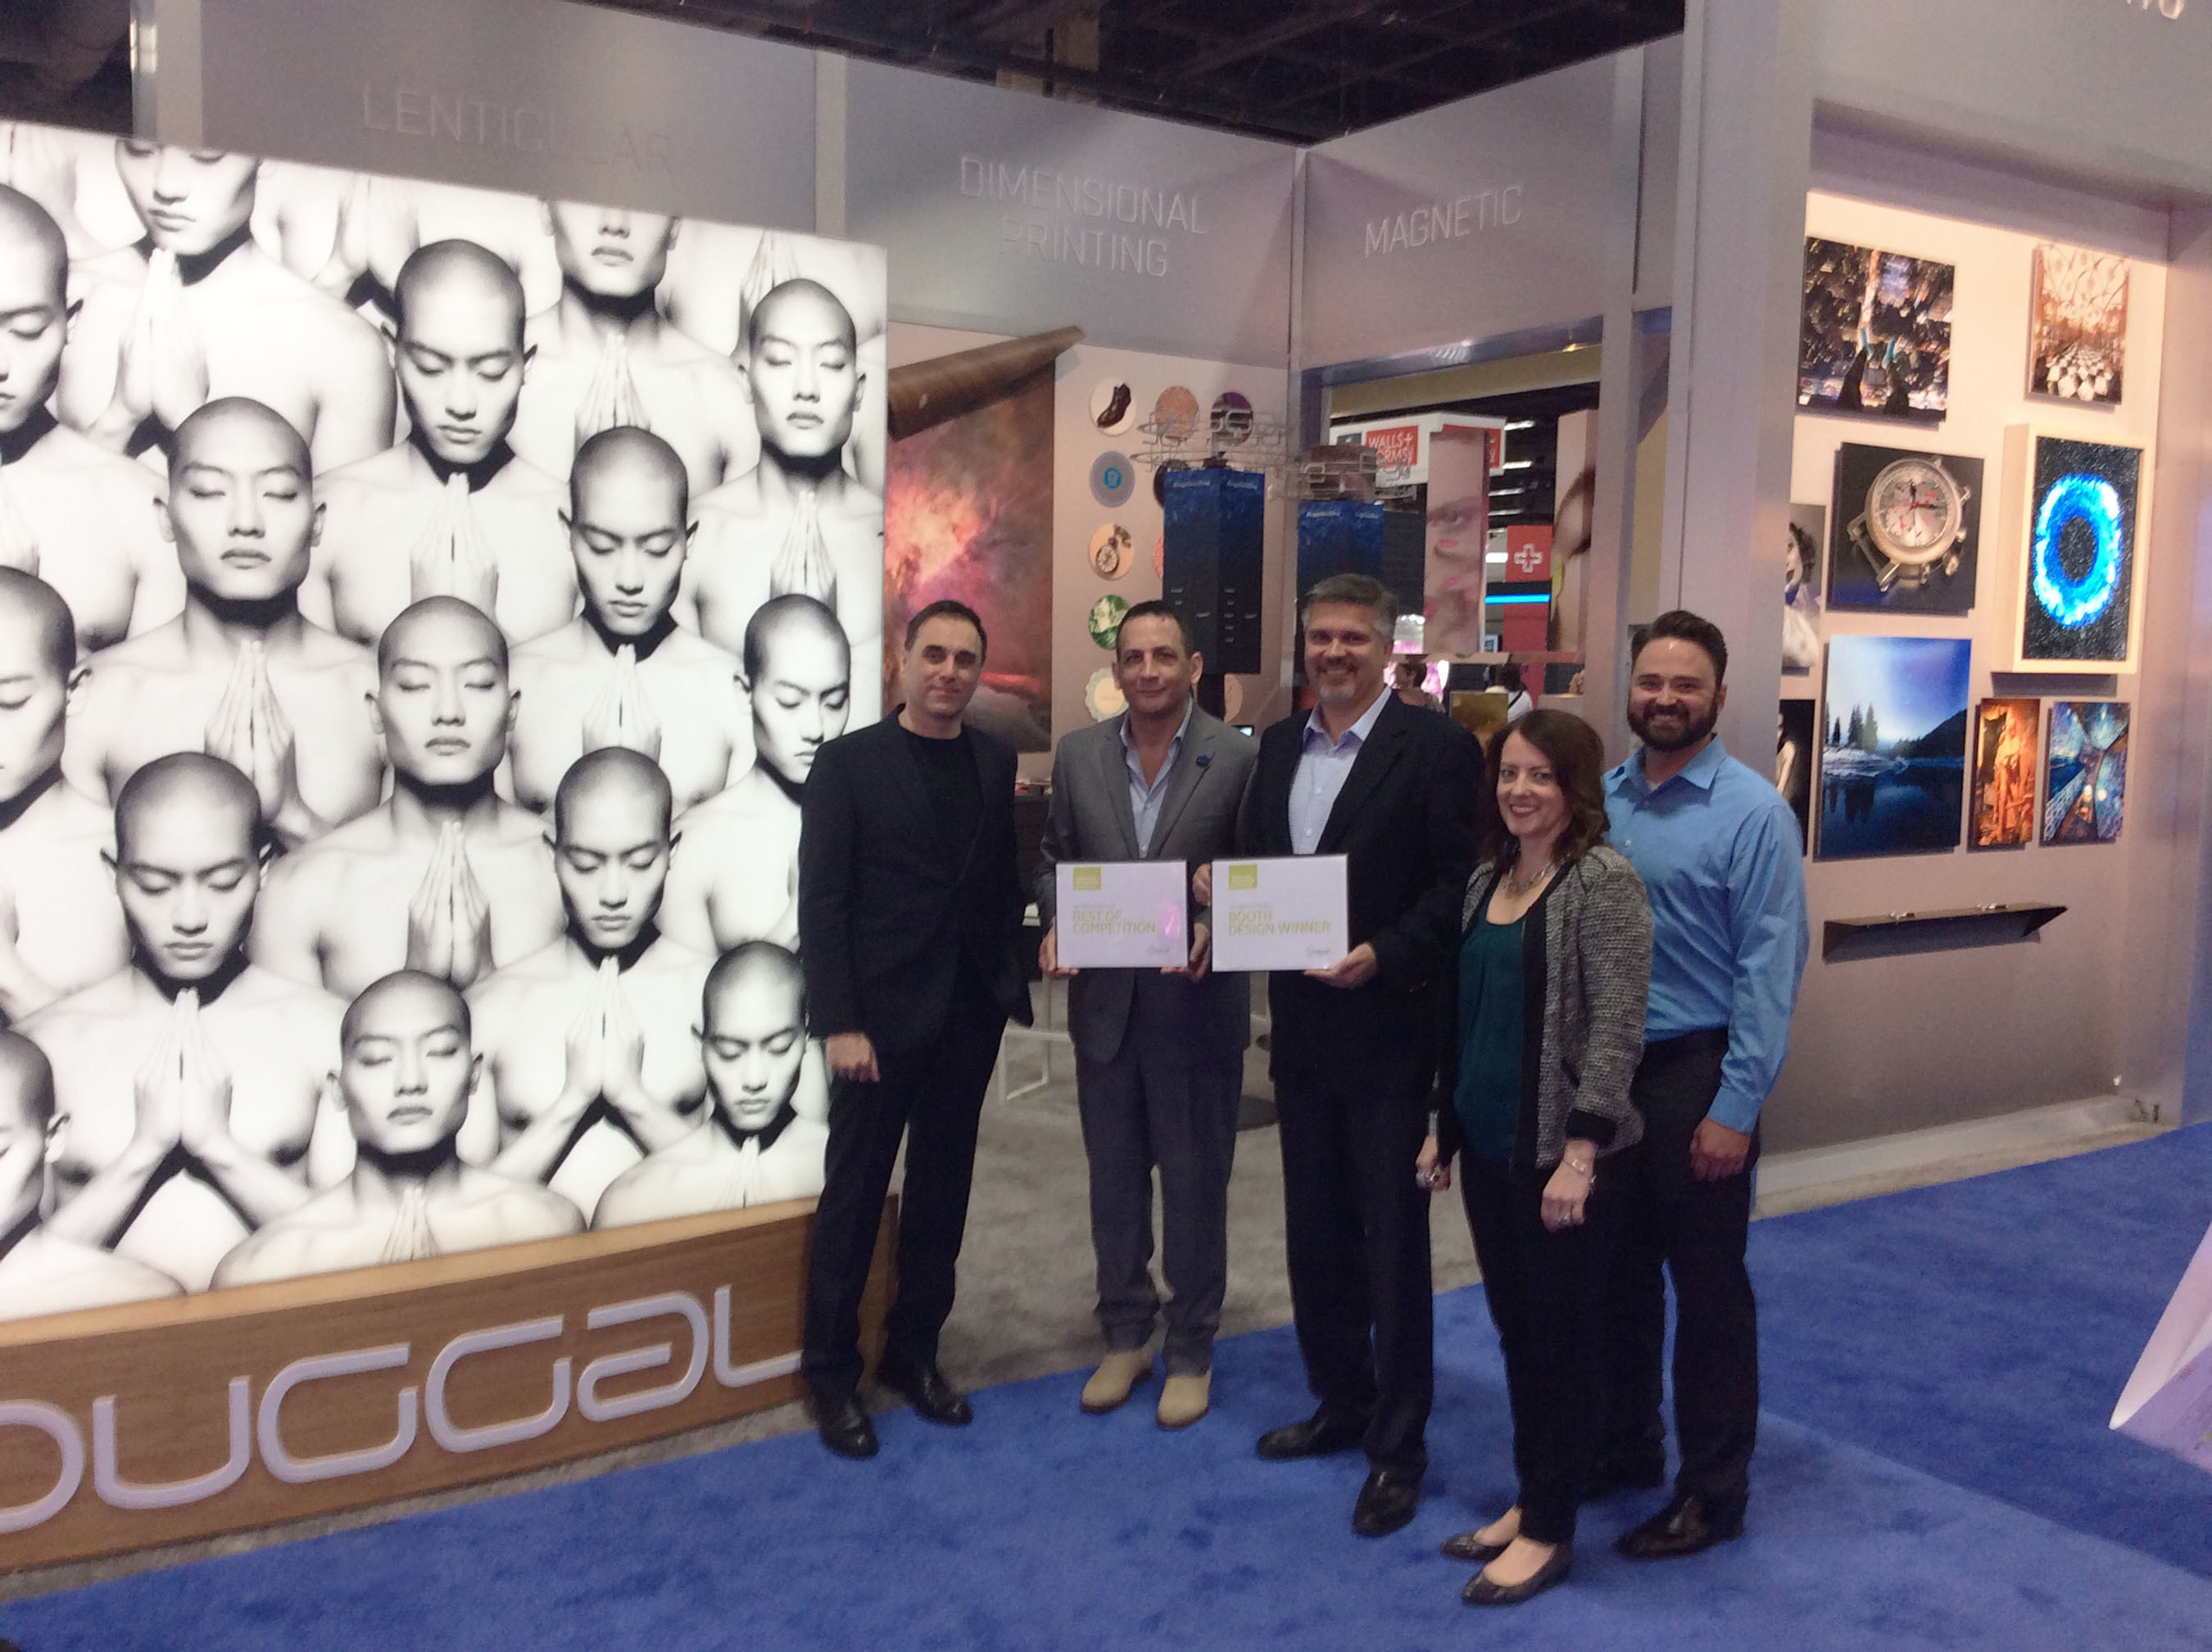 Duggal's Creative Director Glenn Rabbach and CEO Michael Duggal accepting GlobalShop 2016's awards for 'Best of Competition' and 'Best Booth Design'